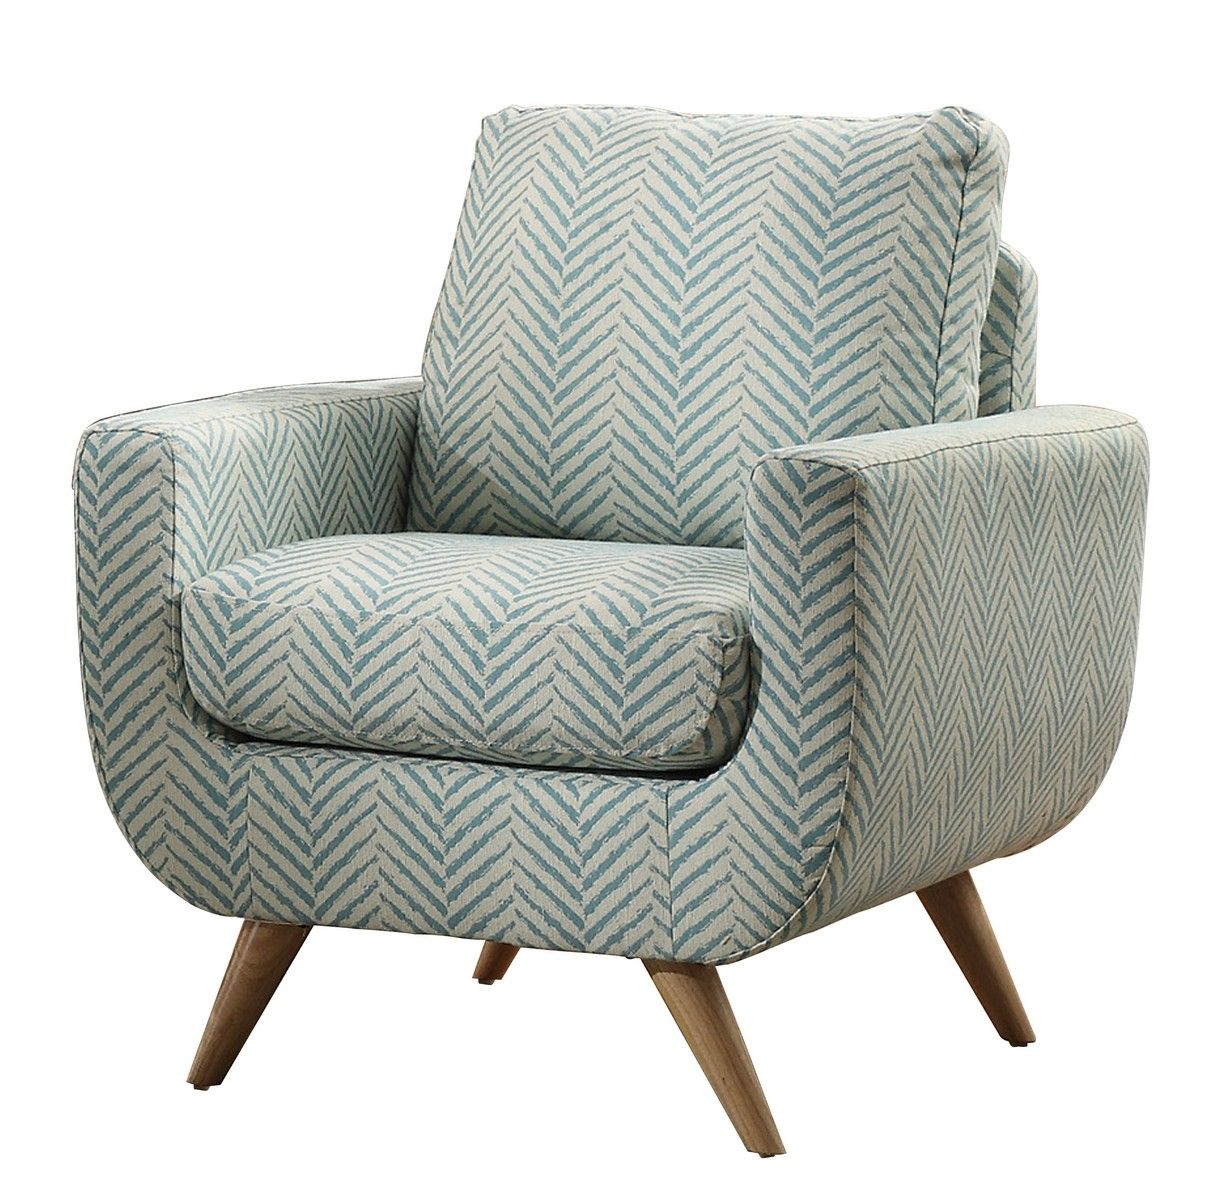 Homelegance Deryn Accent Chair Polyester Teal Upholstered